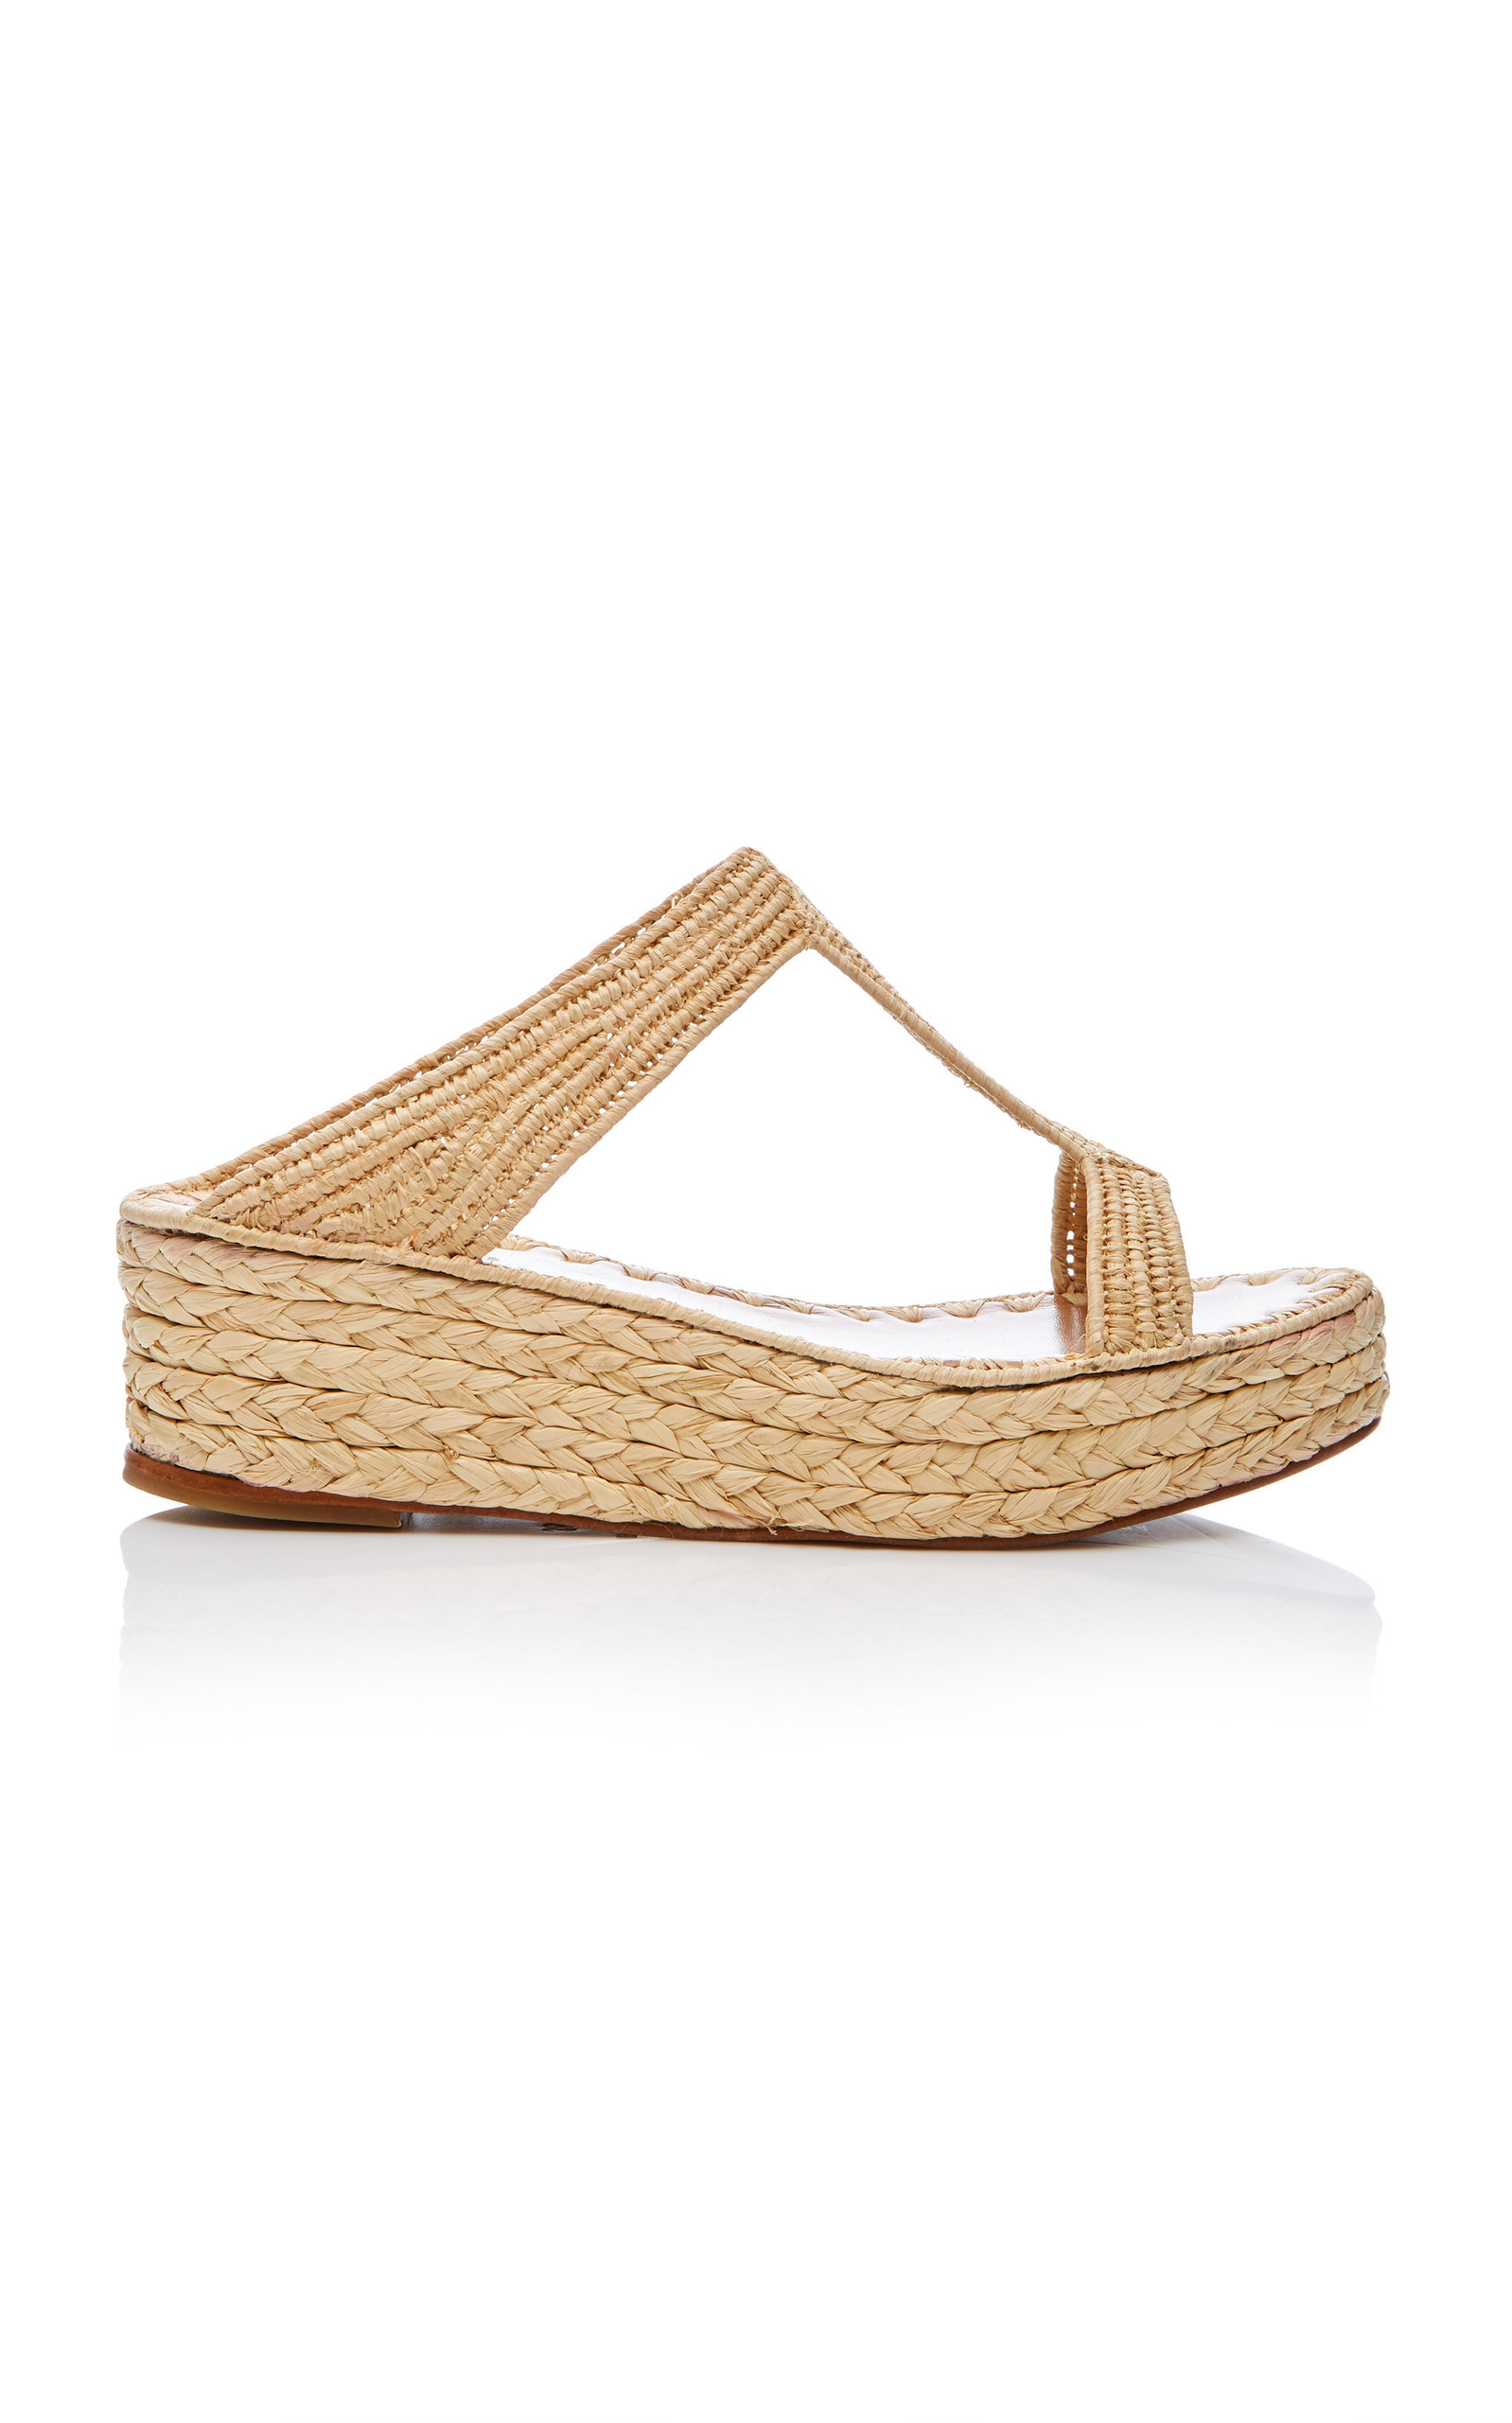 Lina Raffia Wedge SlidesCarrie Forbes